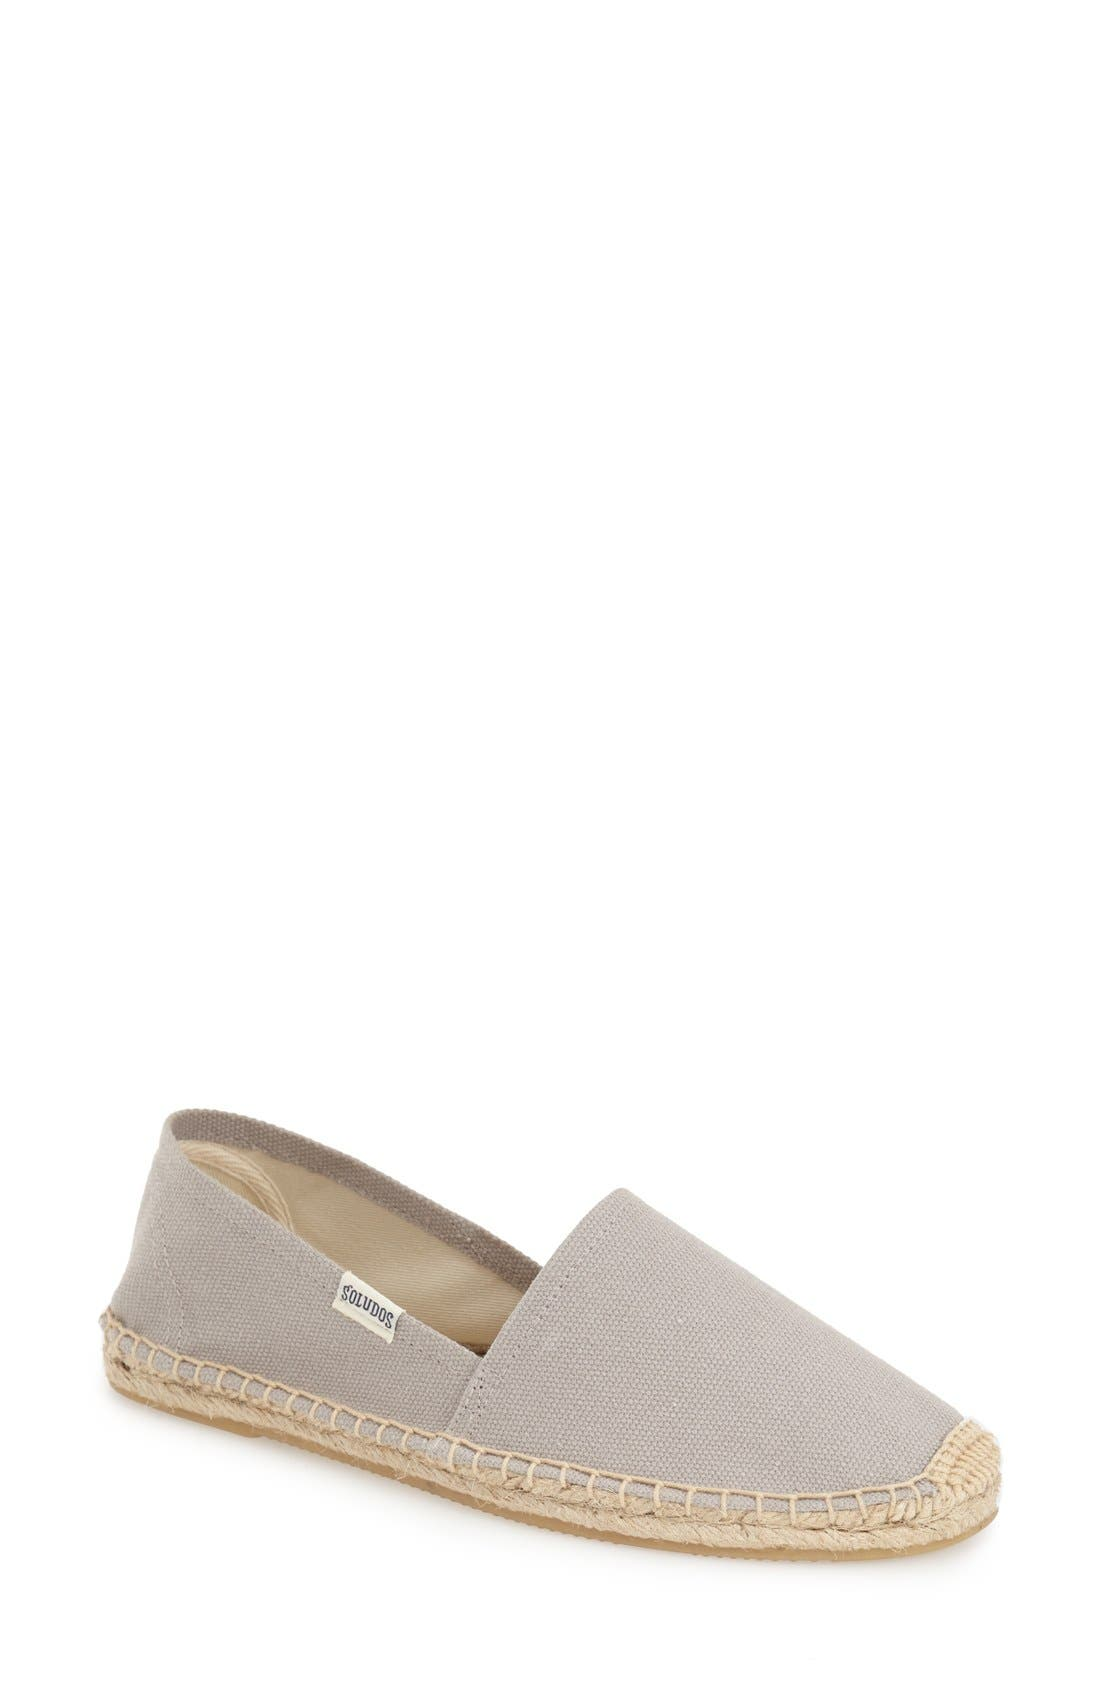 Soludos 'Original Dali' Espadrille Slip-On (Women)